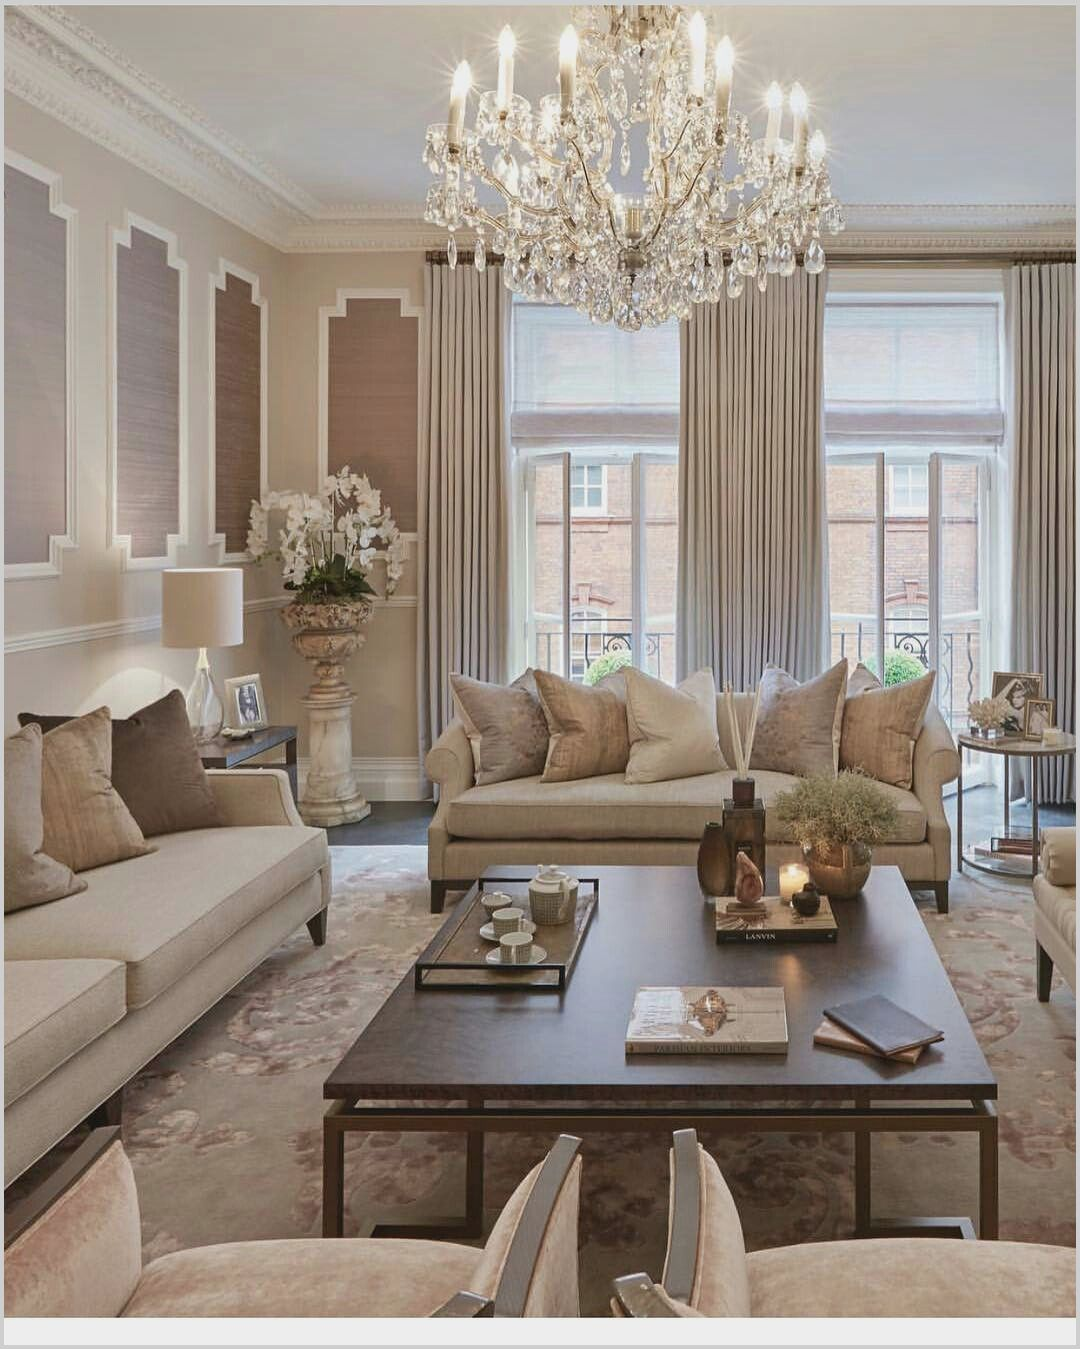 Traditinal Living Room Ideas Big House In 2020 Living Room Decor Gray Formal Living Room Furniture Luxury Living Room